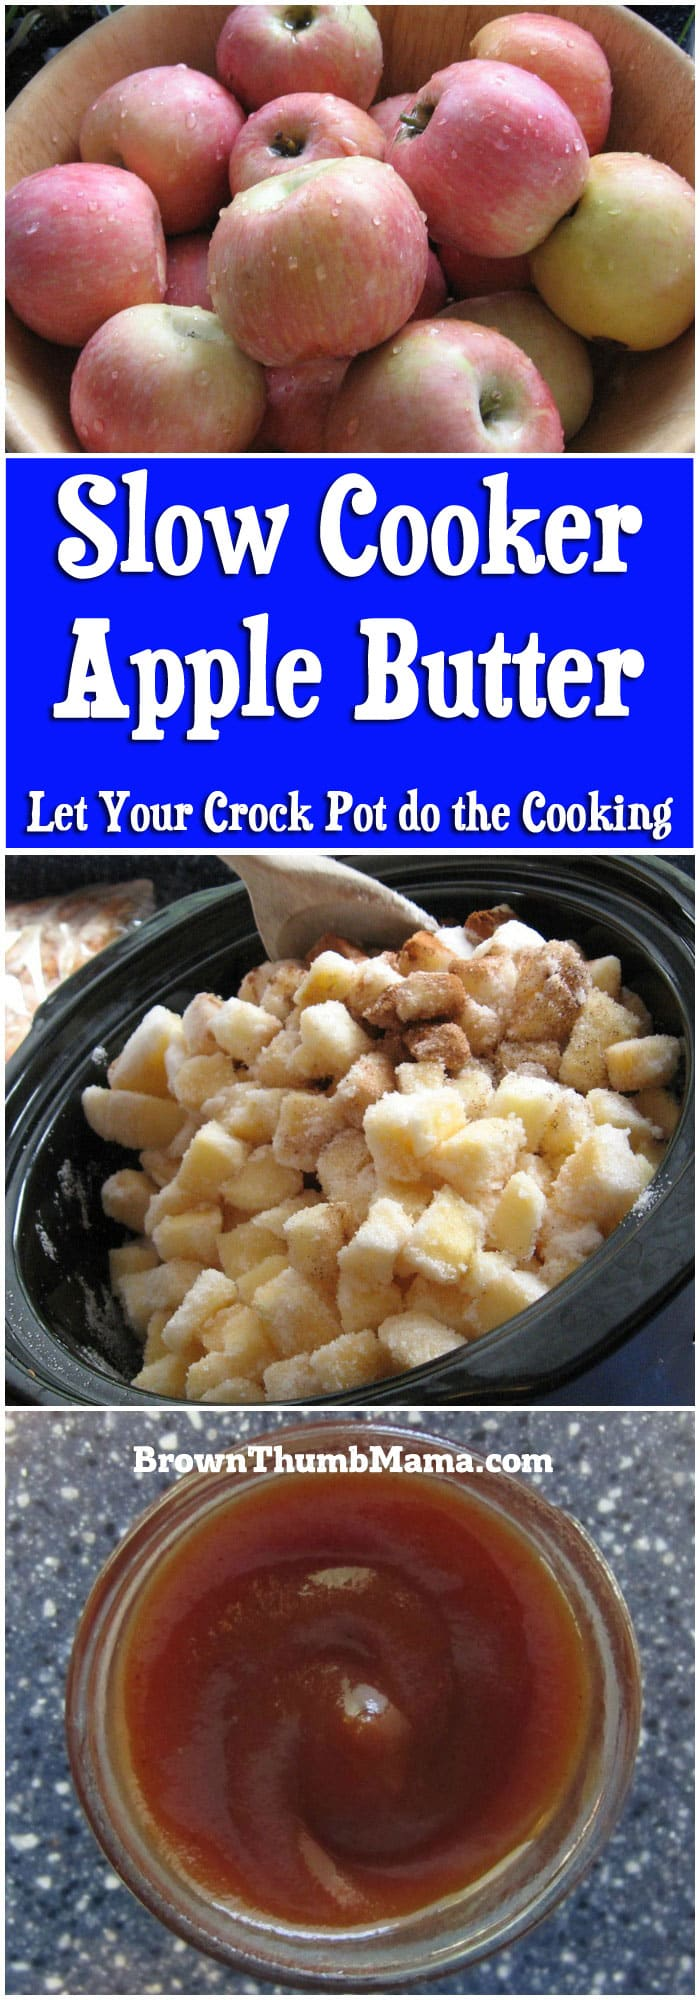 It's so easy to make apple butter in the slow cooker! 5 ingredients make a flavorful spread for toast, english muffins, or best of all--turkey sandwiches.